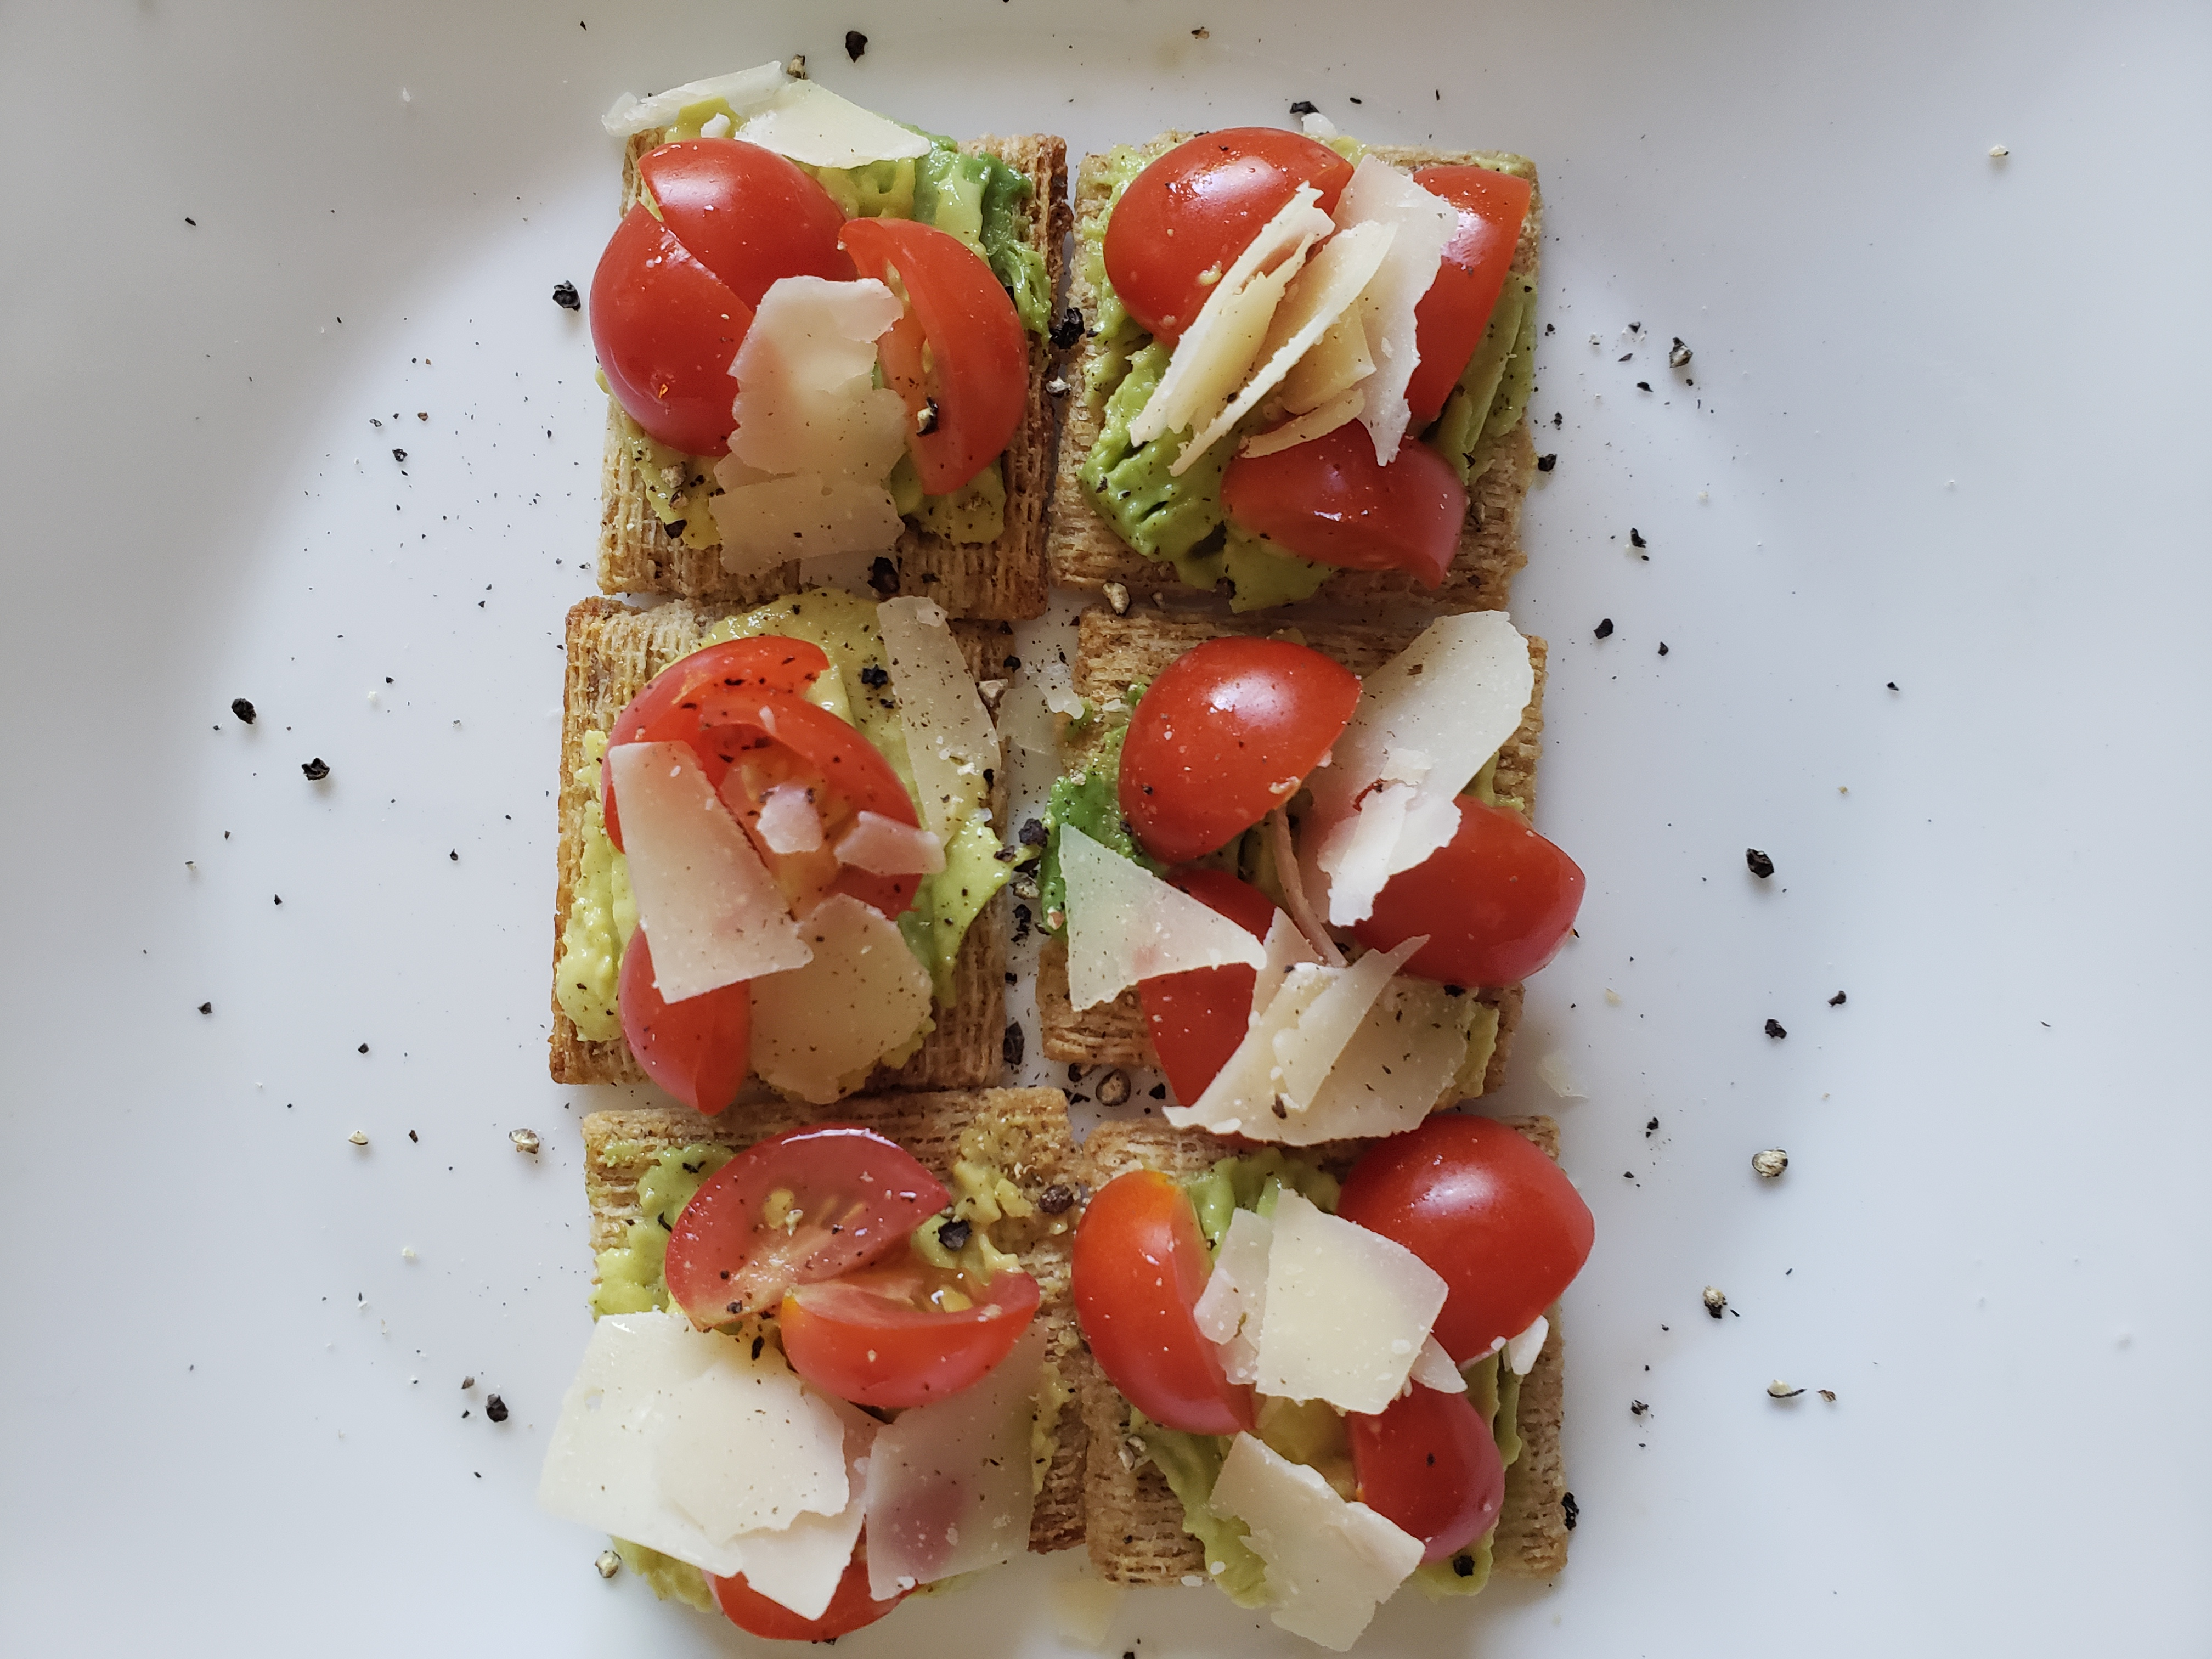 Avocado, Tomato, and Parmesan Crackers